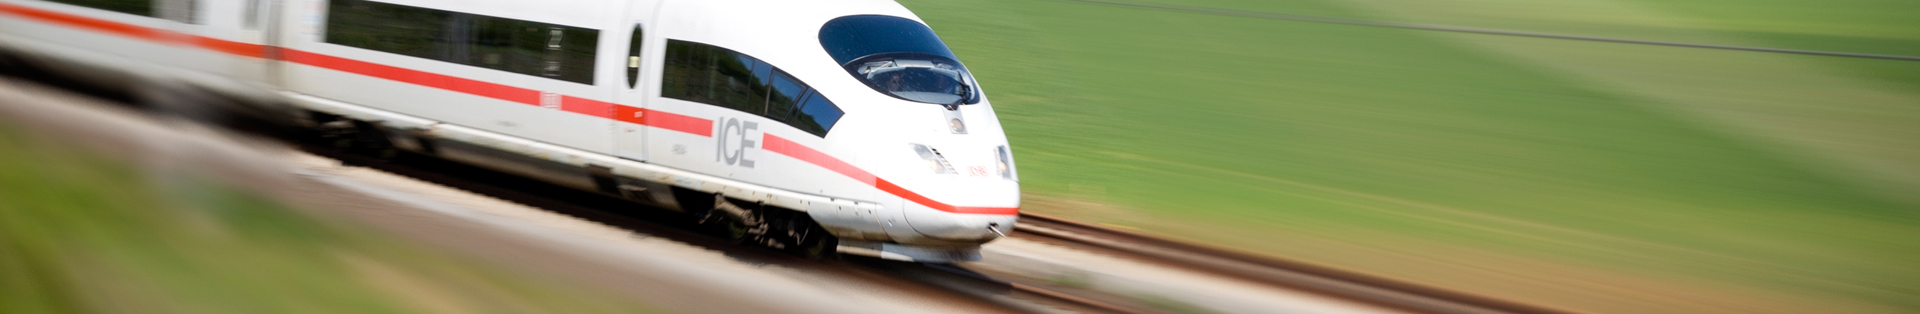 Arrival by rail | security essen